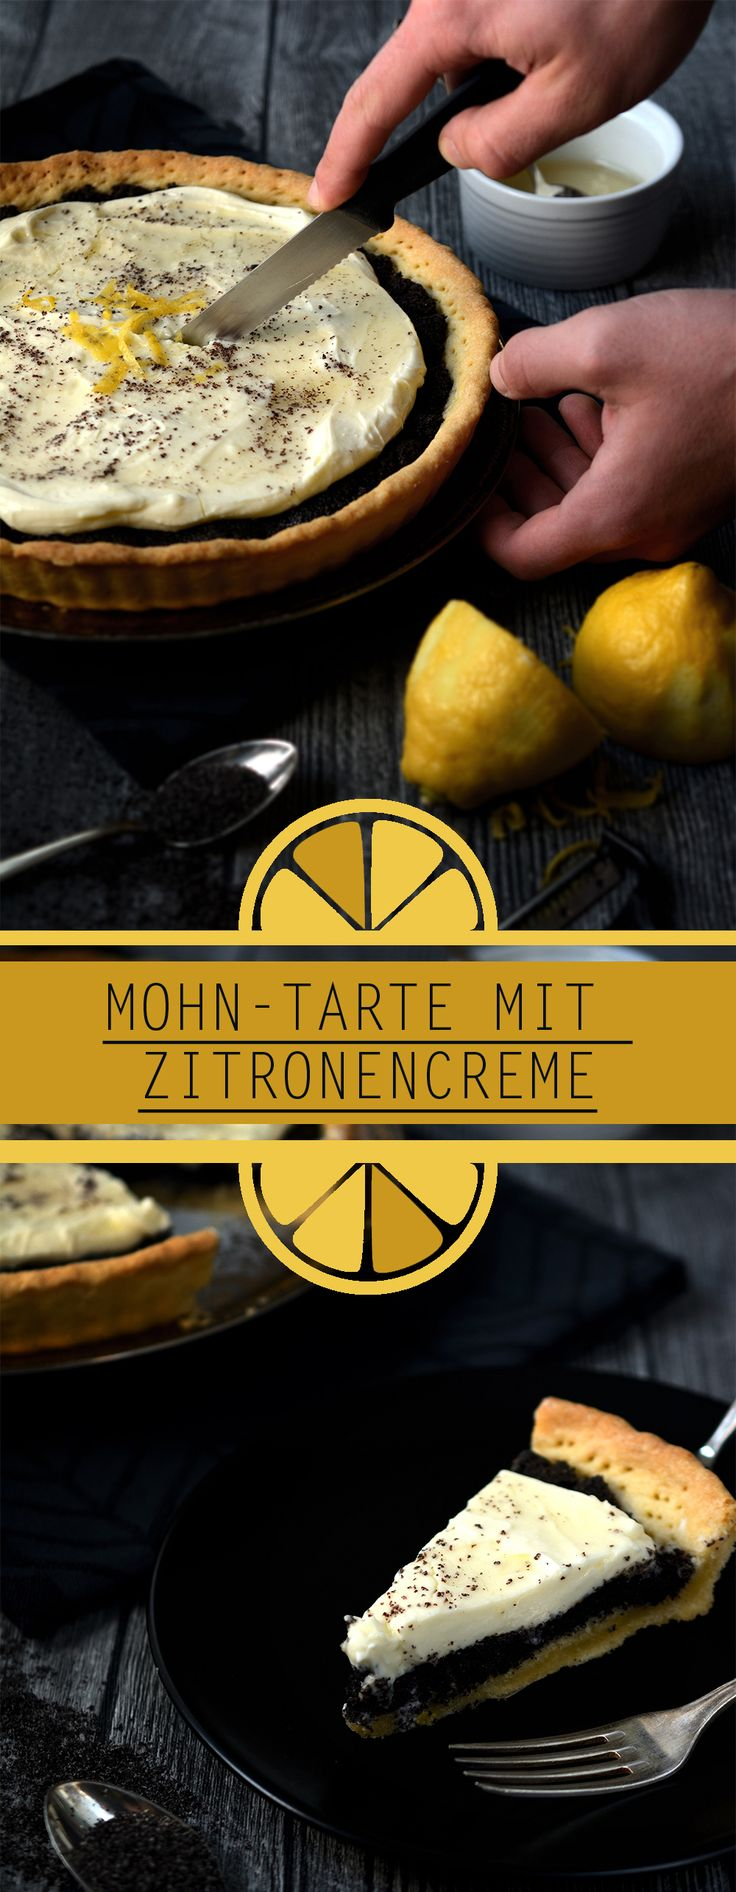 Poppy Seed Tart with lemon cream  /// Mohn-Tarte mit Zitronencreme